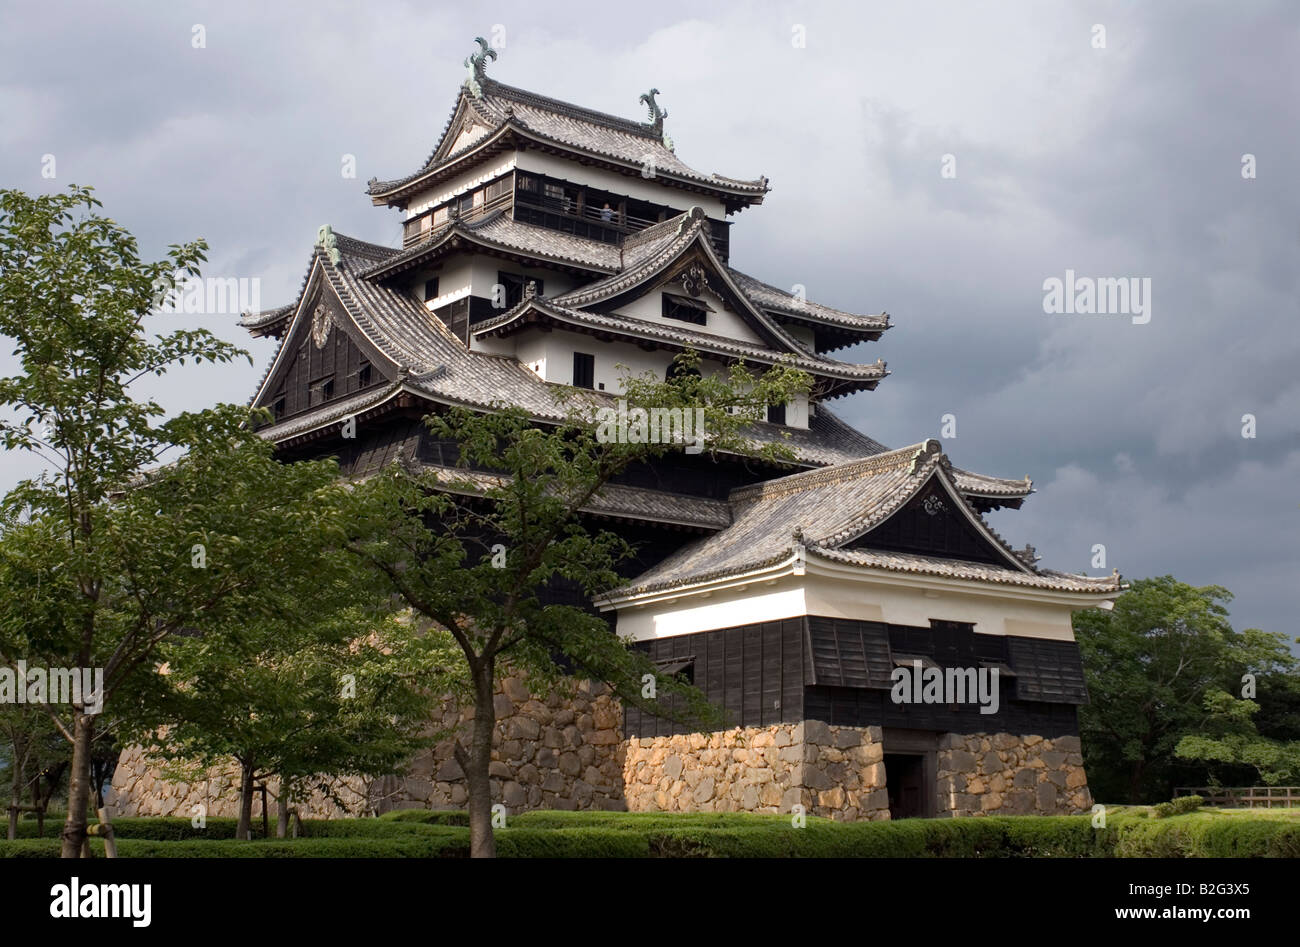 Matsue Castle in Shimane Prefecture is one of only a few remaining original wooden feudal castles in Japan - Stock Image